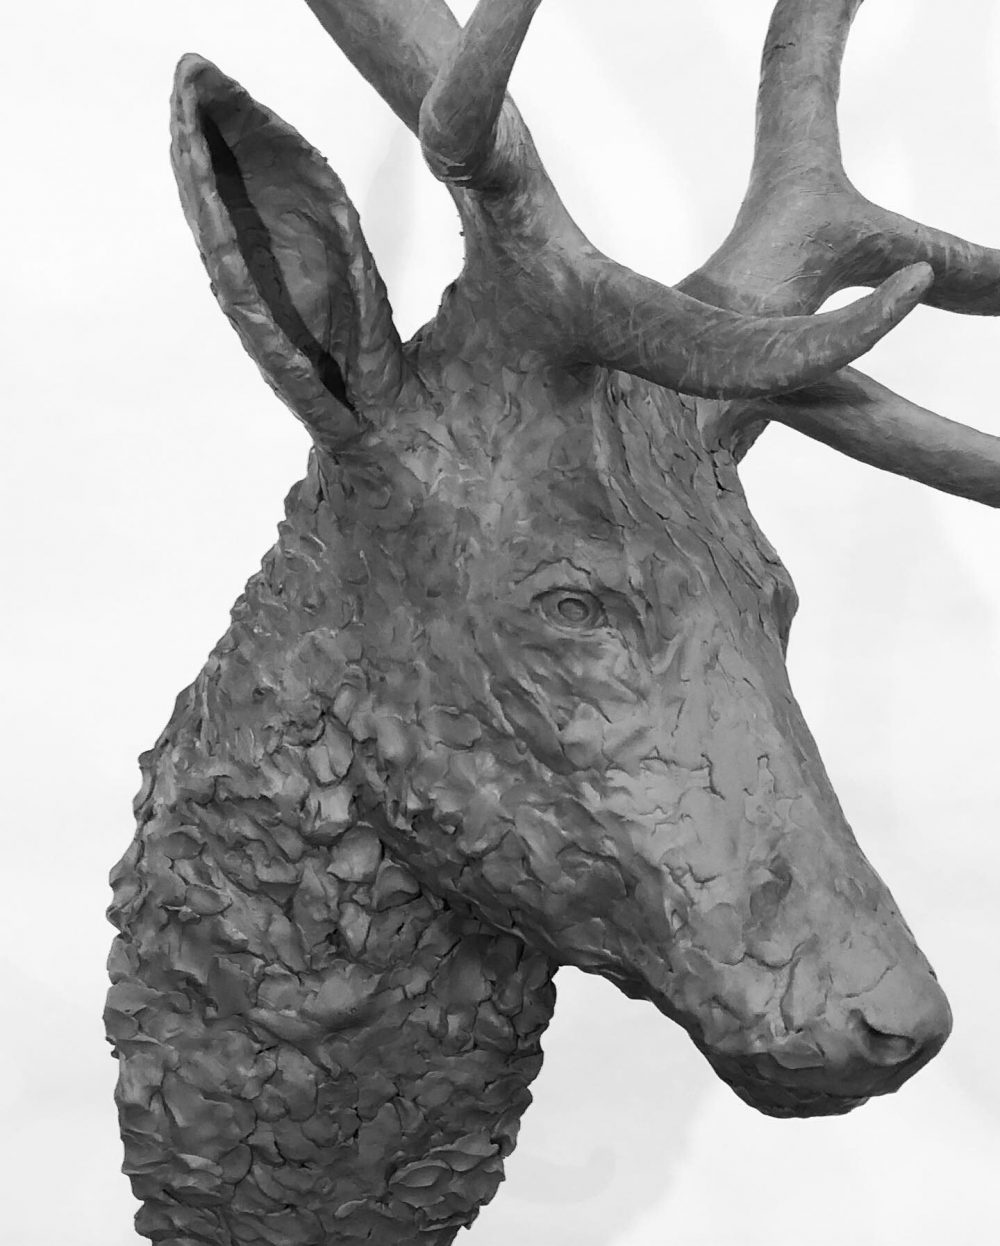 stag head sculpture close up view